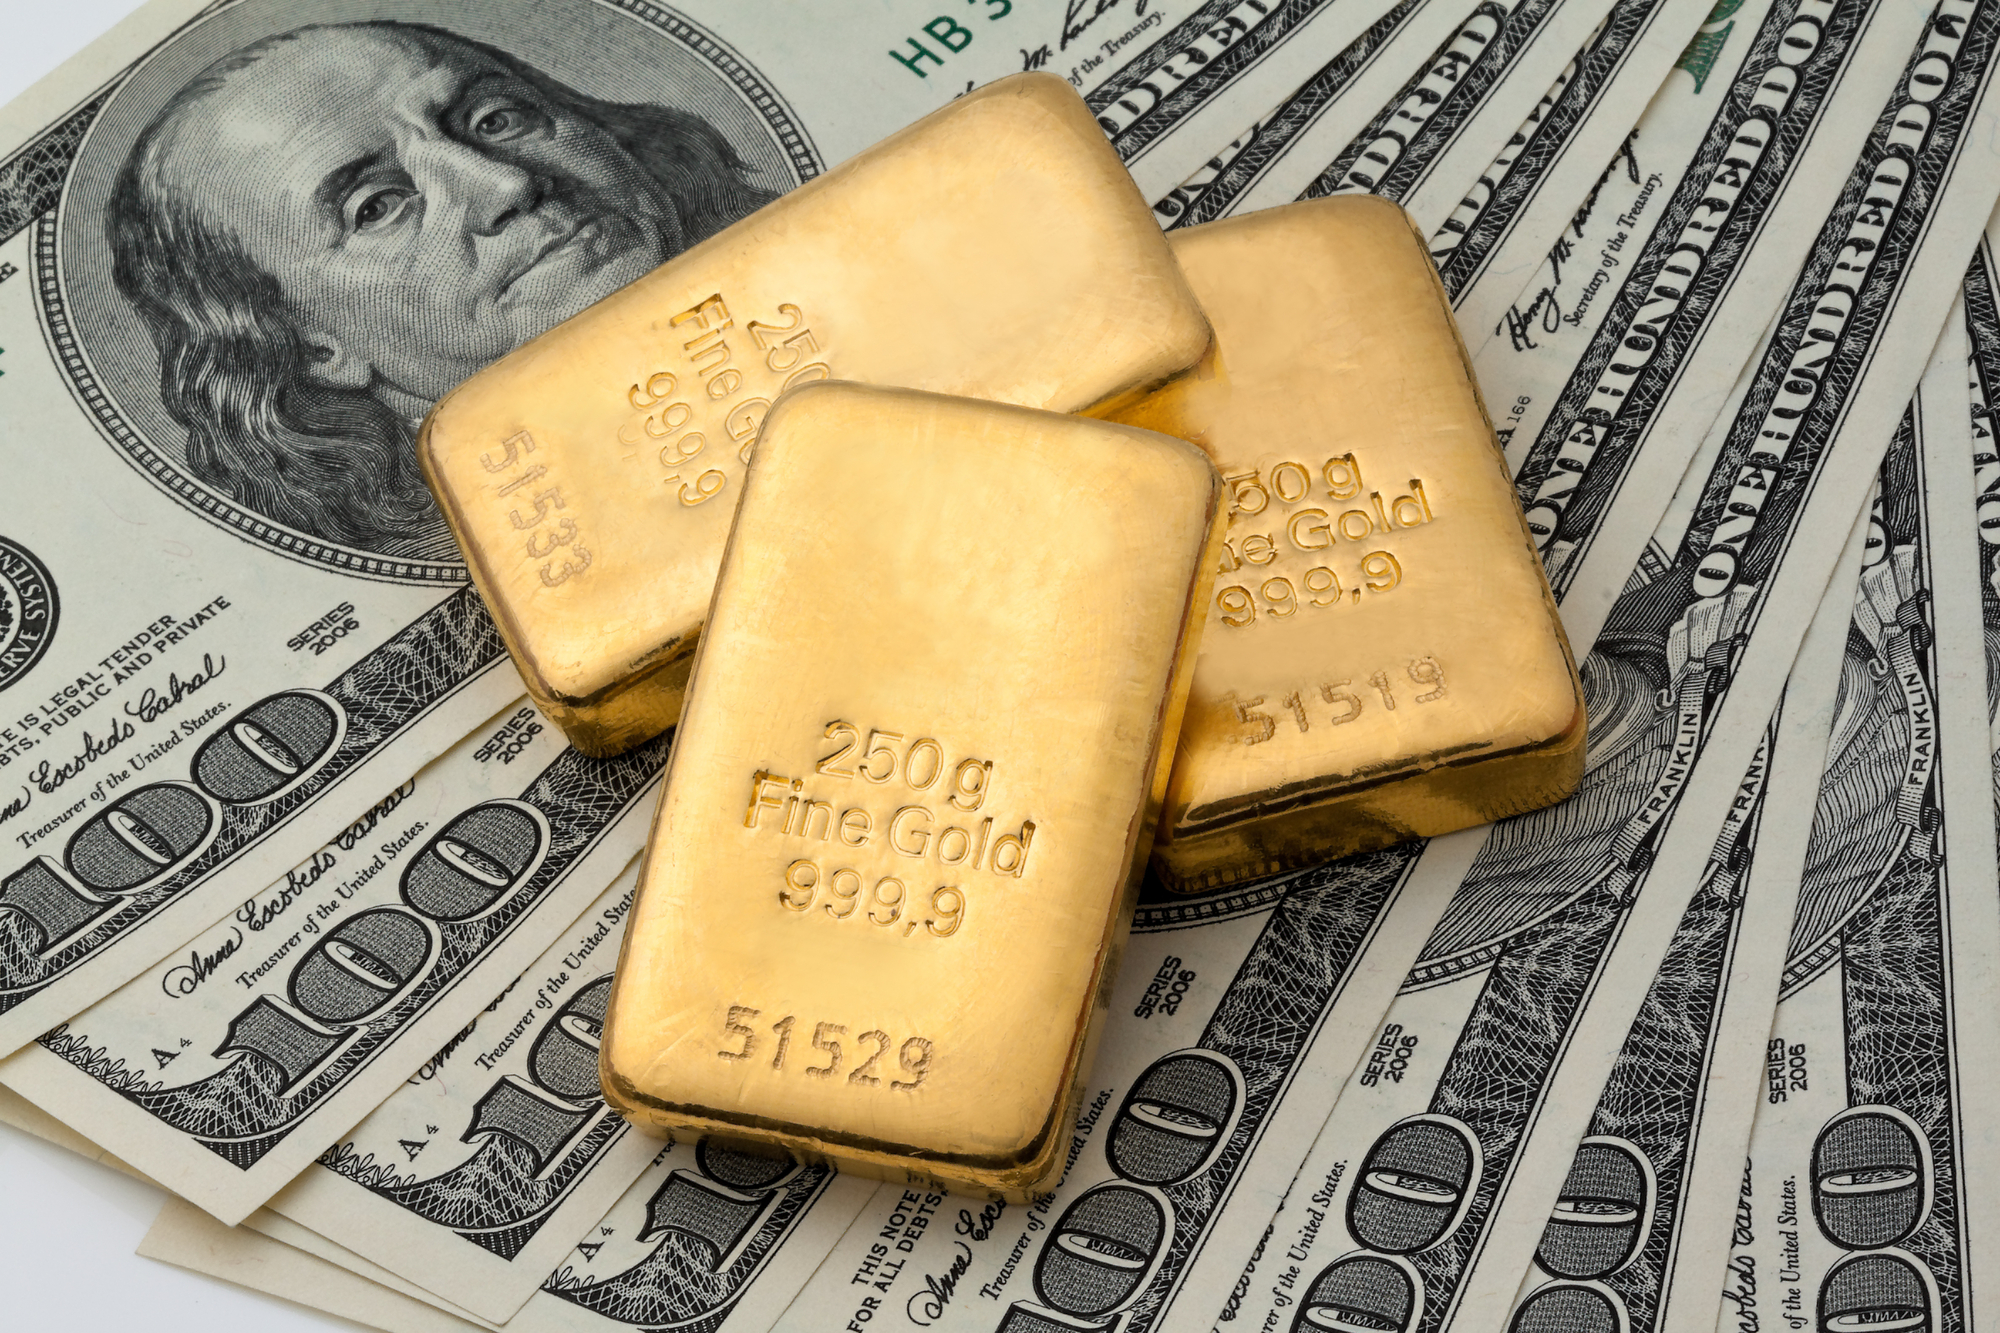 Why Should I Invest In Gold goldbar.net